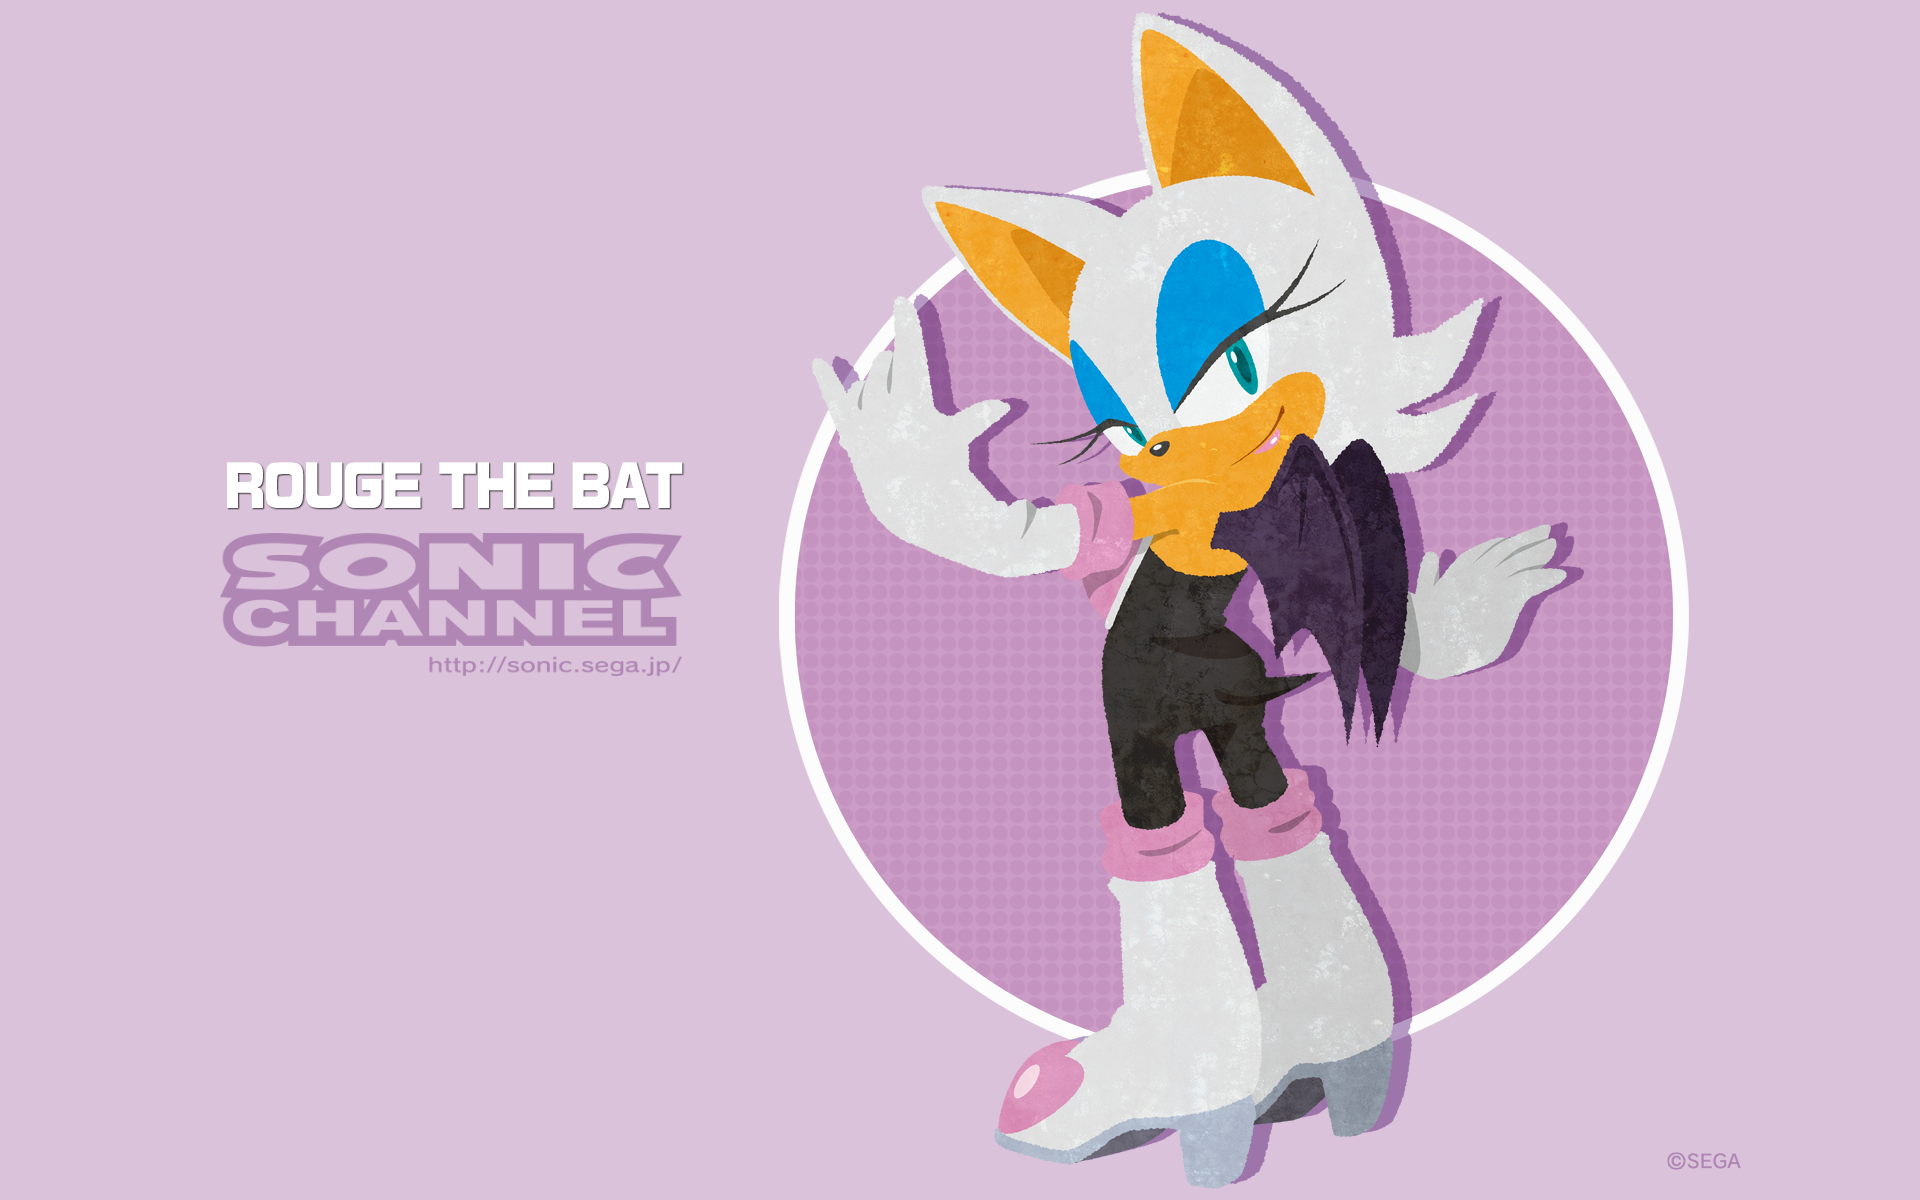 http://sonic.sega.jp/SonicChannel/enjoy/image/wallpaper_149_rouge_11_pc.png